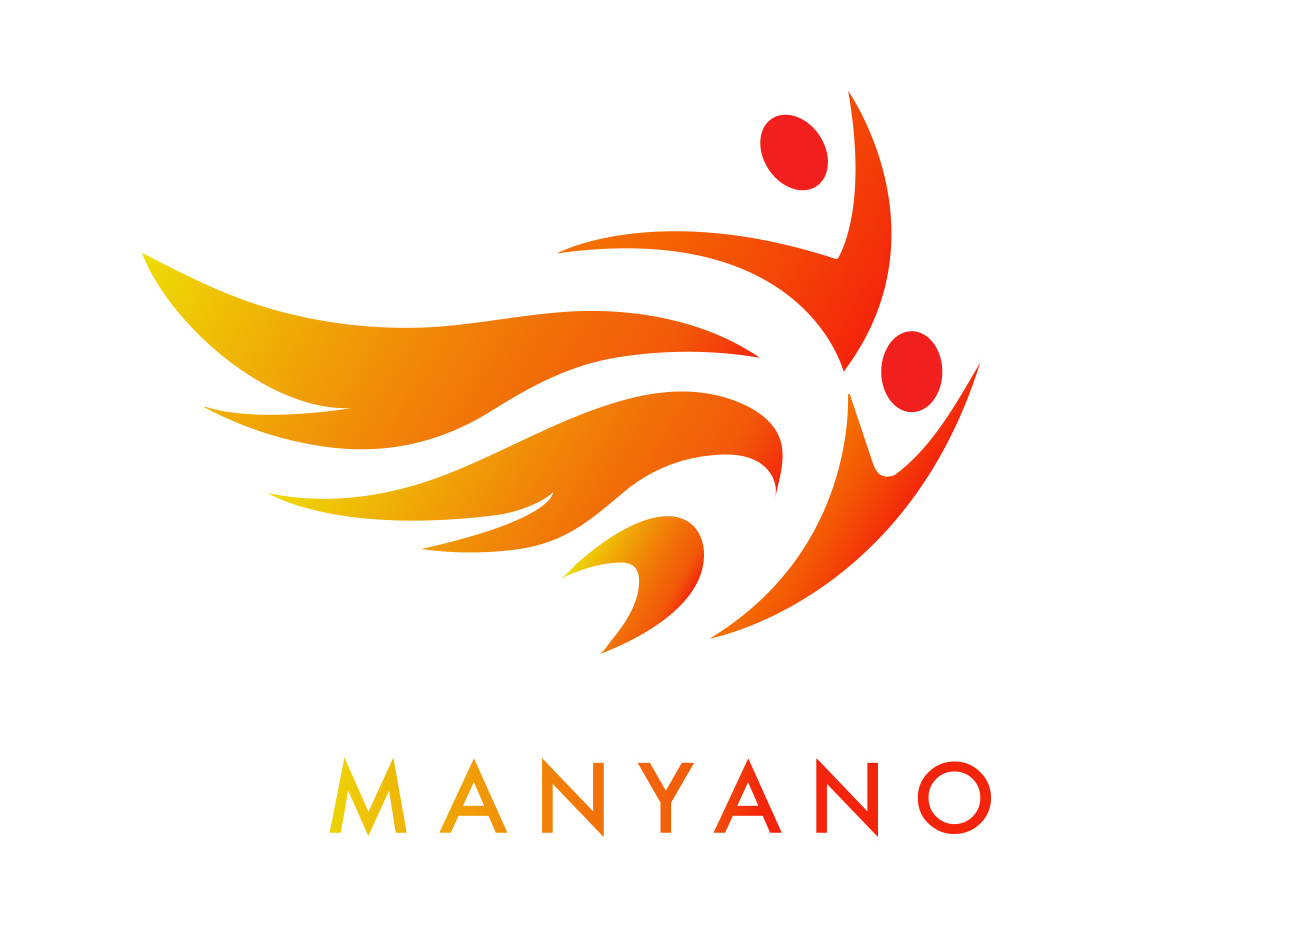 manyano-iconic-gradient-logo-designers-agent-orange-south-african-best-creative-agencies.jpg